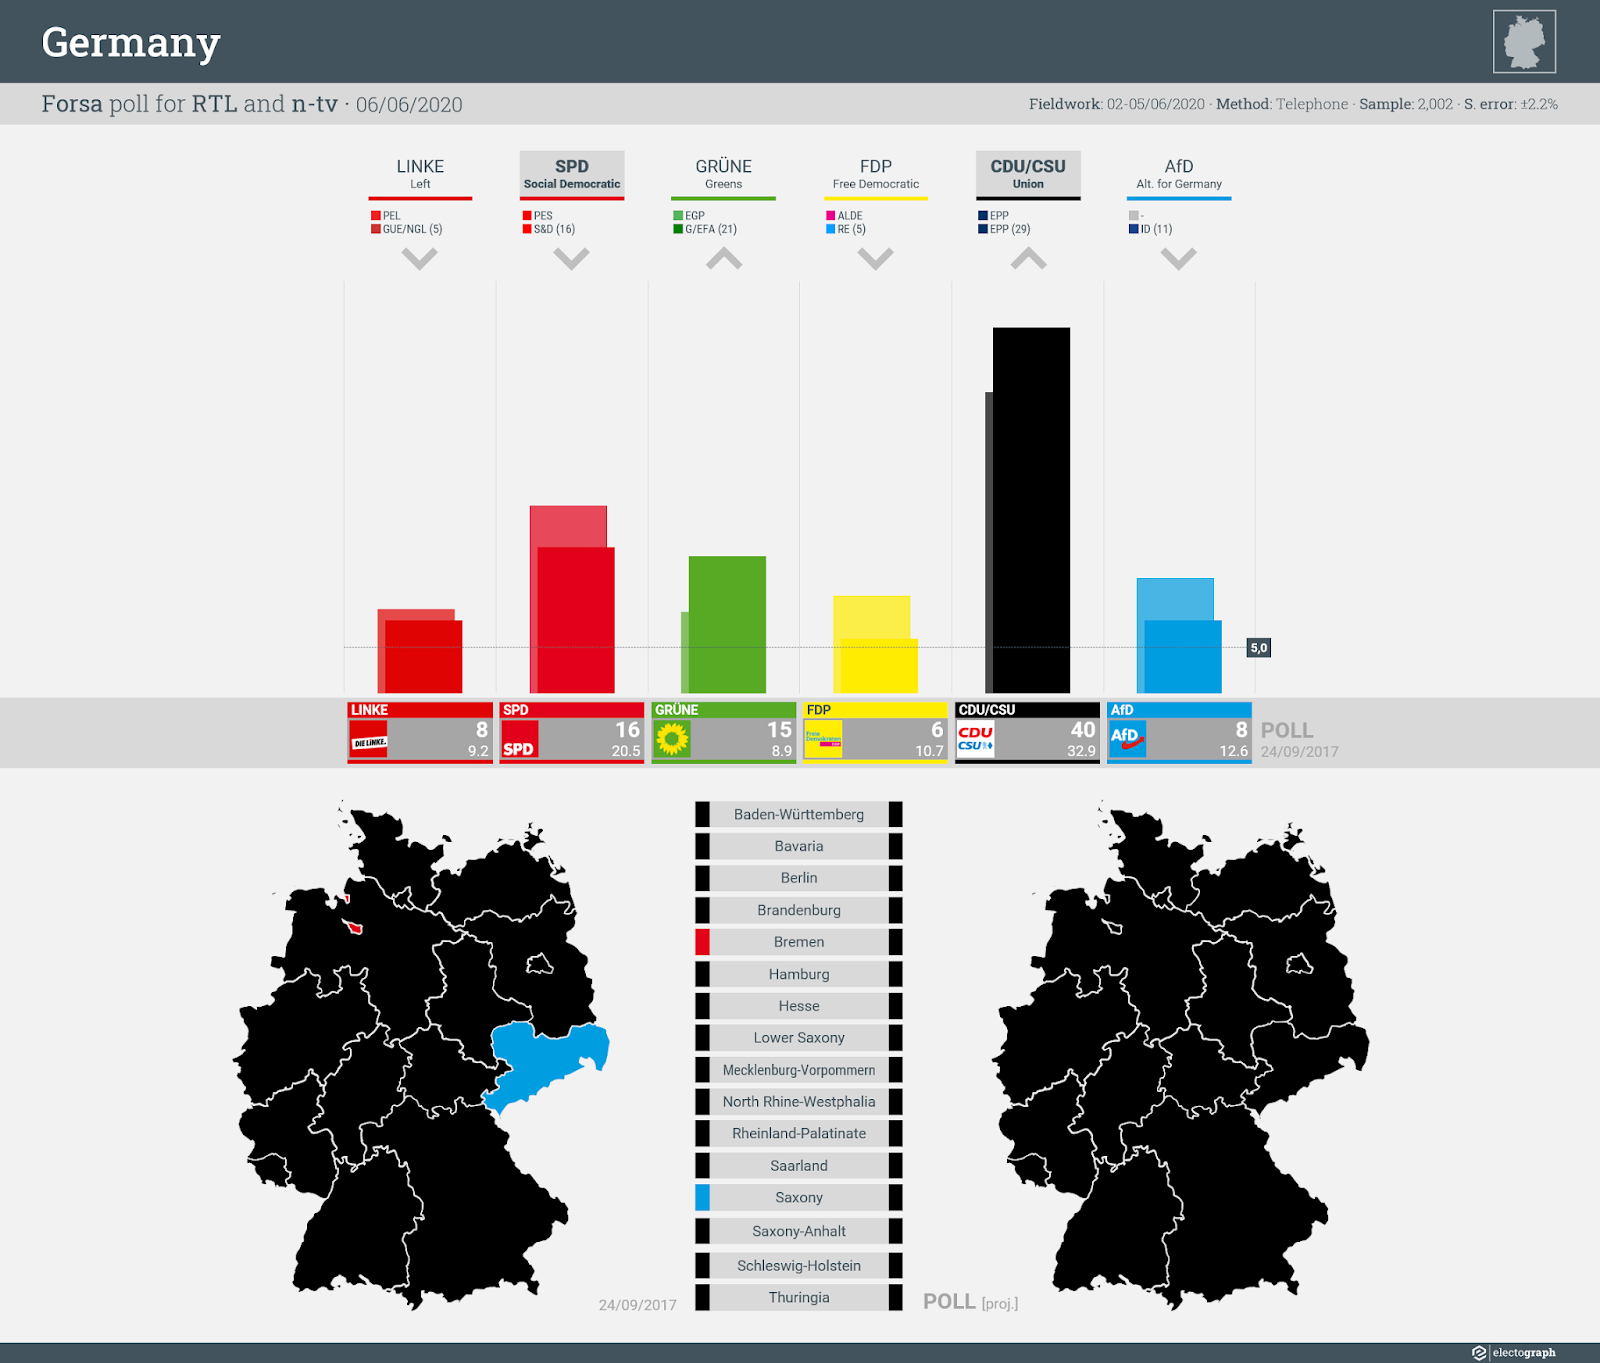 GERMANY: Forsa poll chart for RTL and n-tv, 6 June 2020